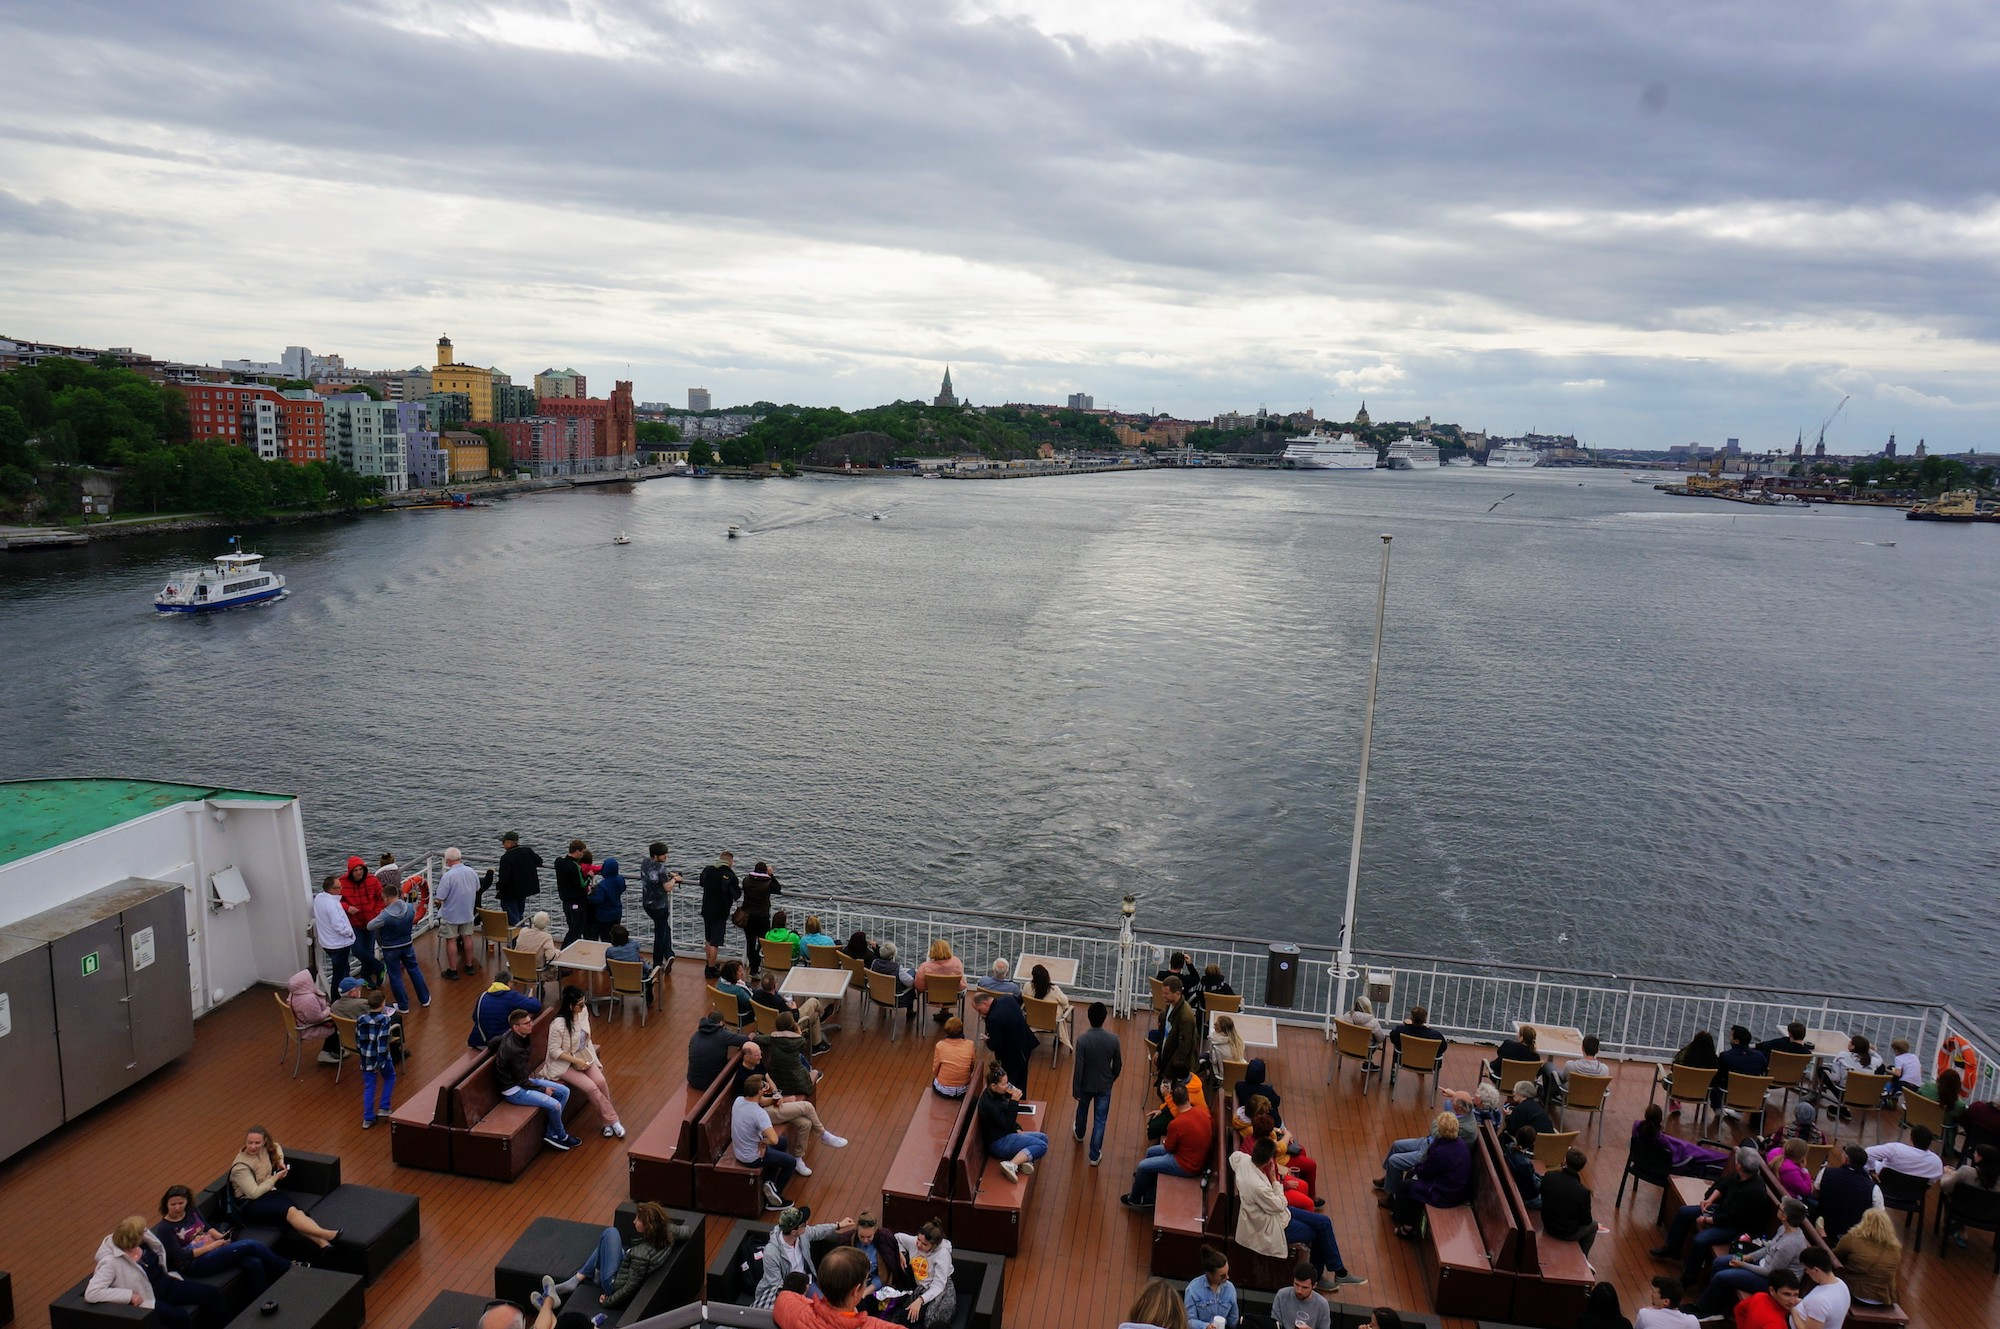 Departing Stockholm aboard a ferry from Stadsgården port.